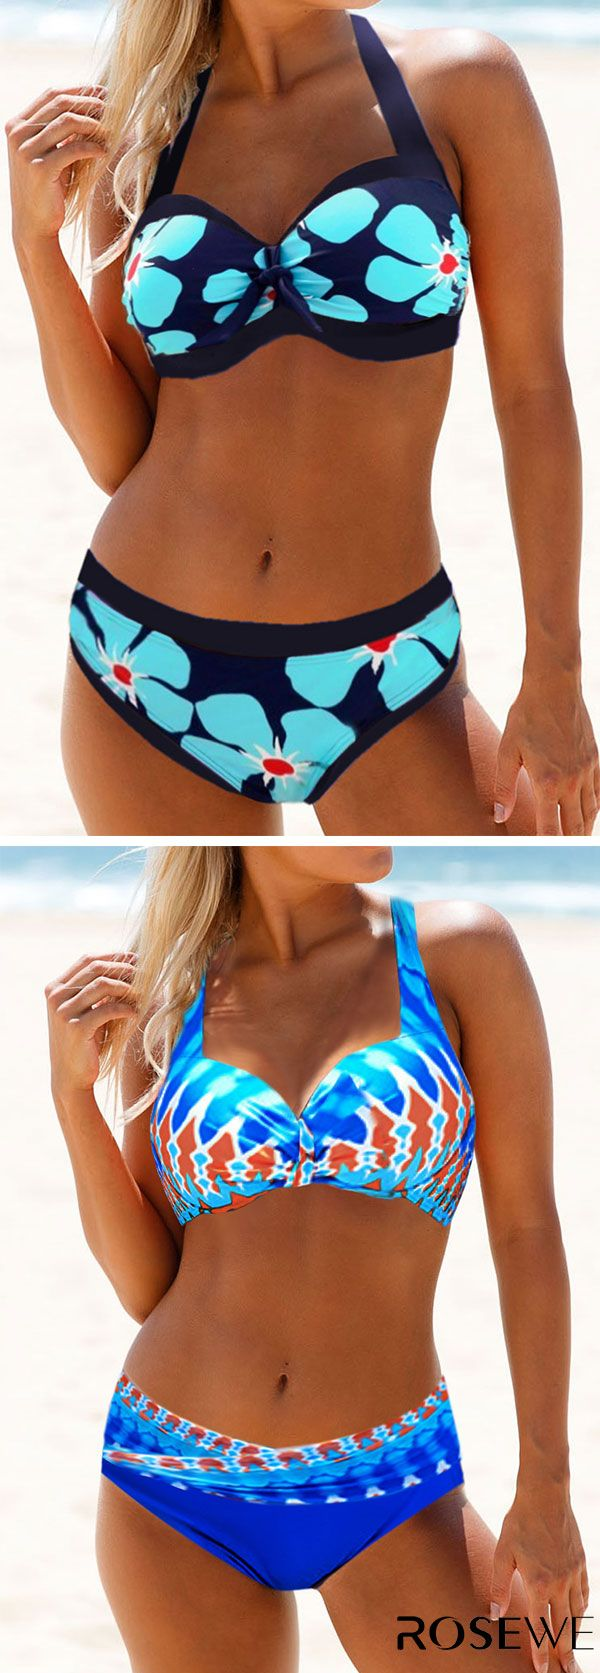 Best swimwear for curvy girl. Upgrade your wardrobe and try new styles this year